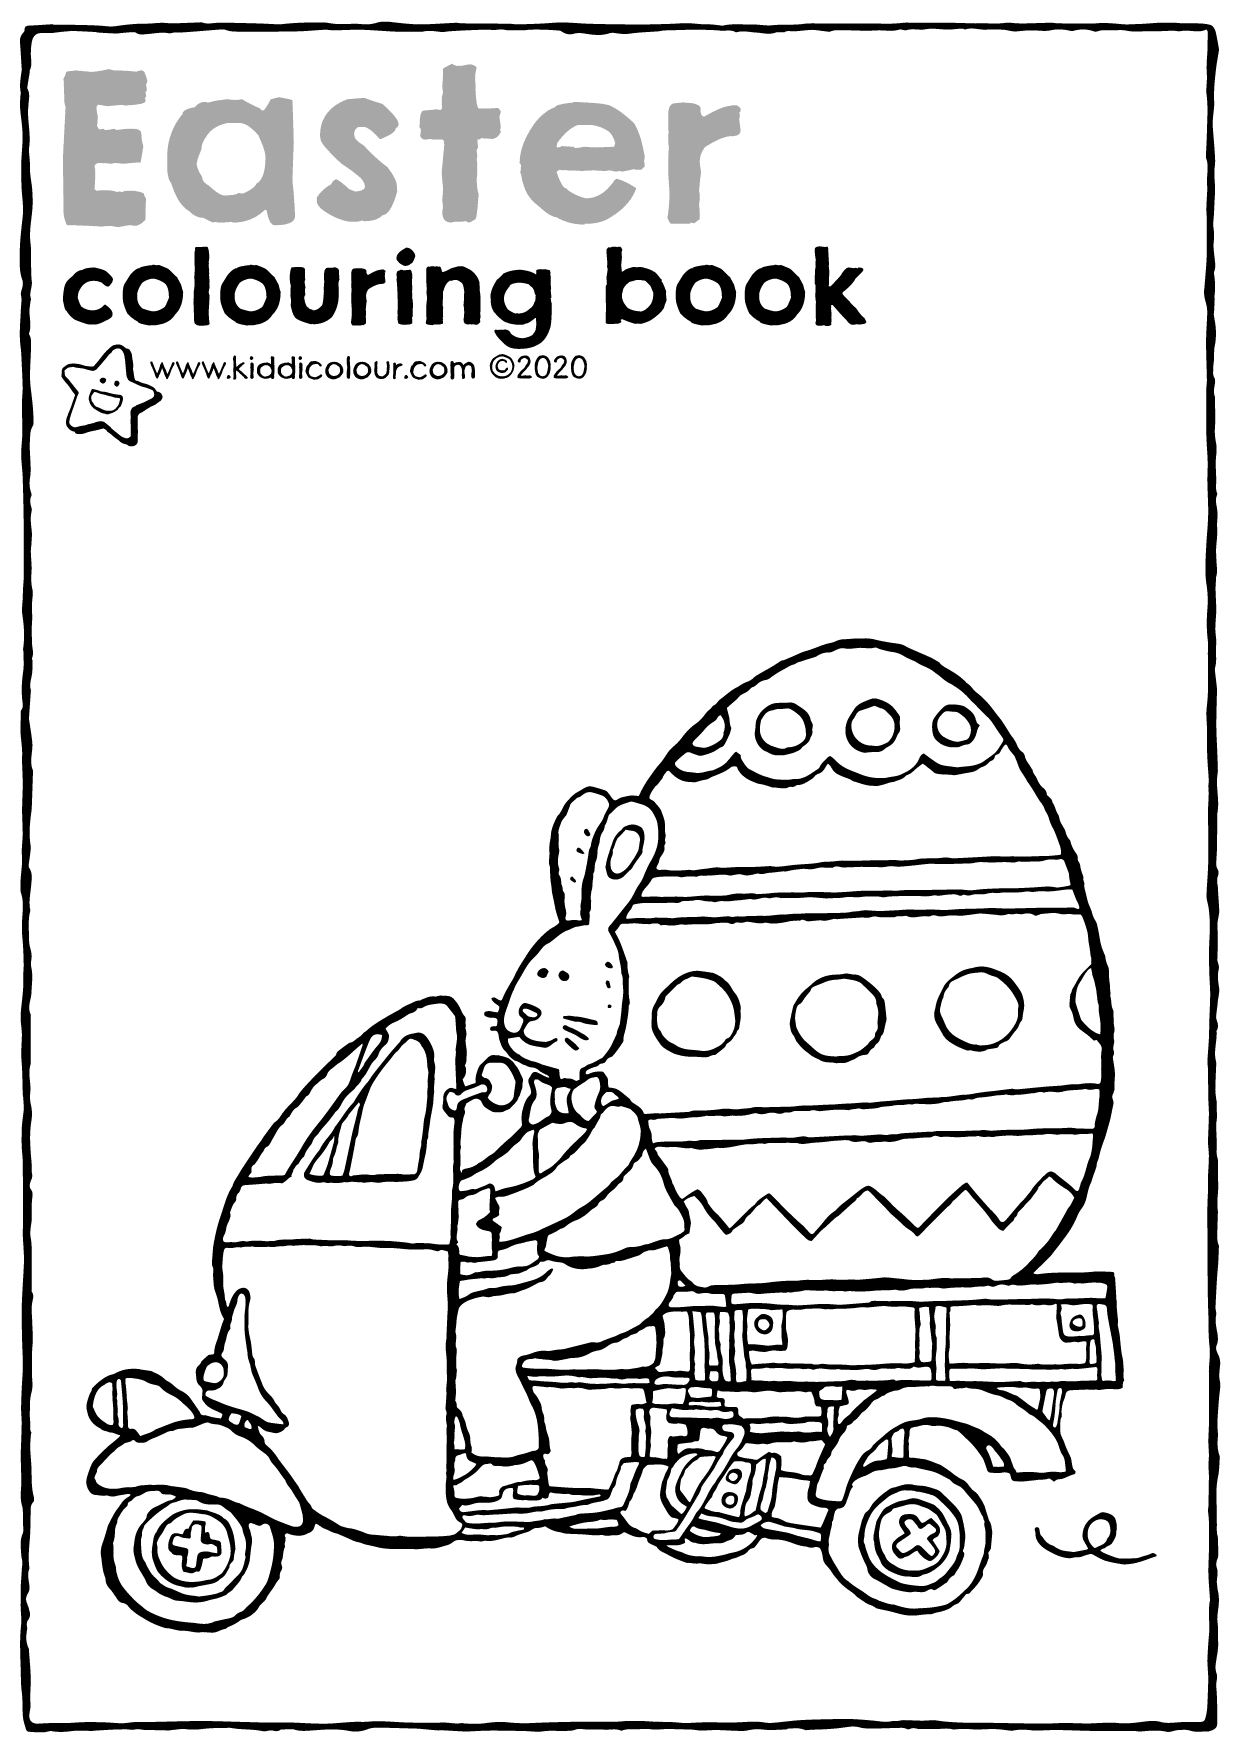 Easter colouring booklet